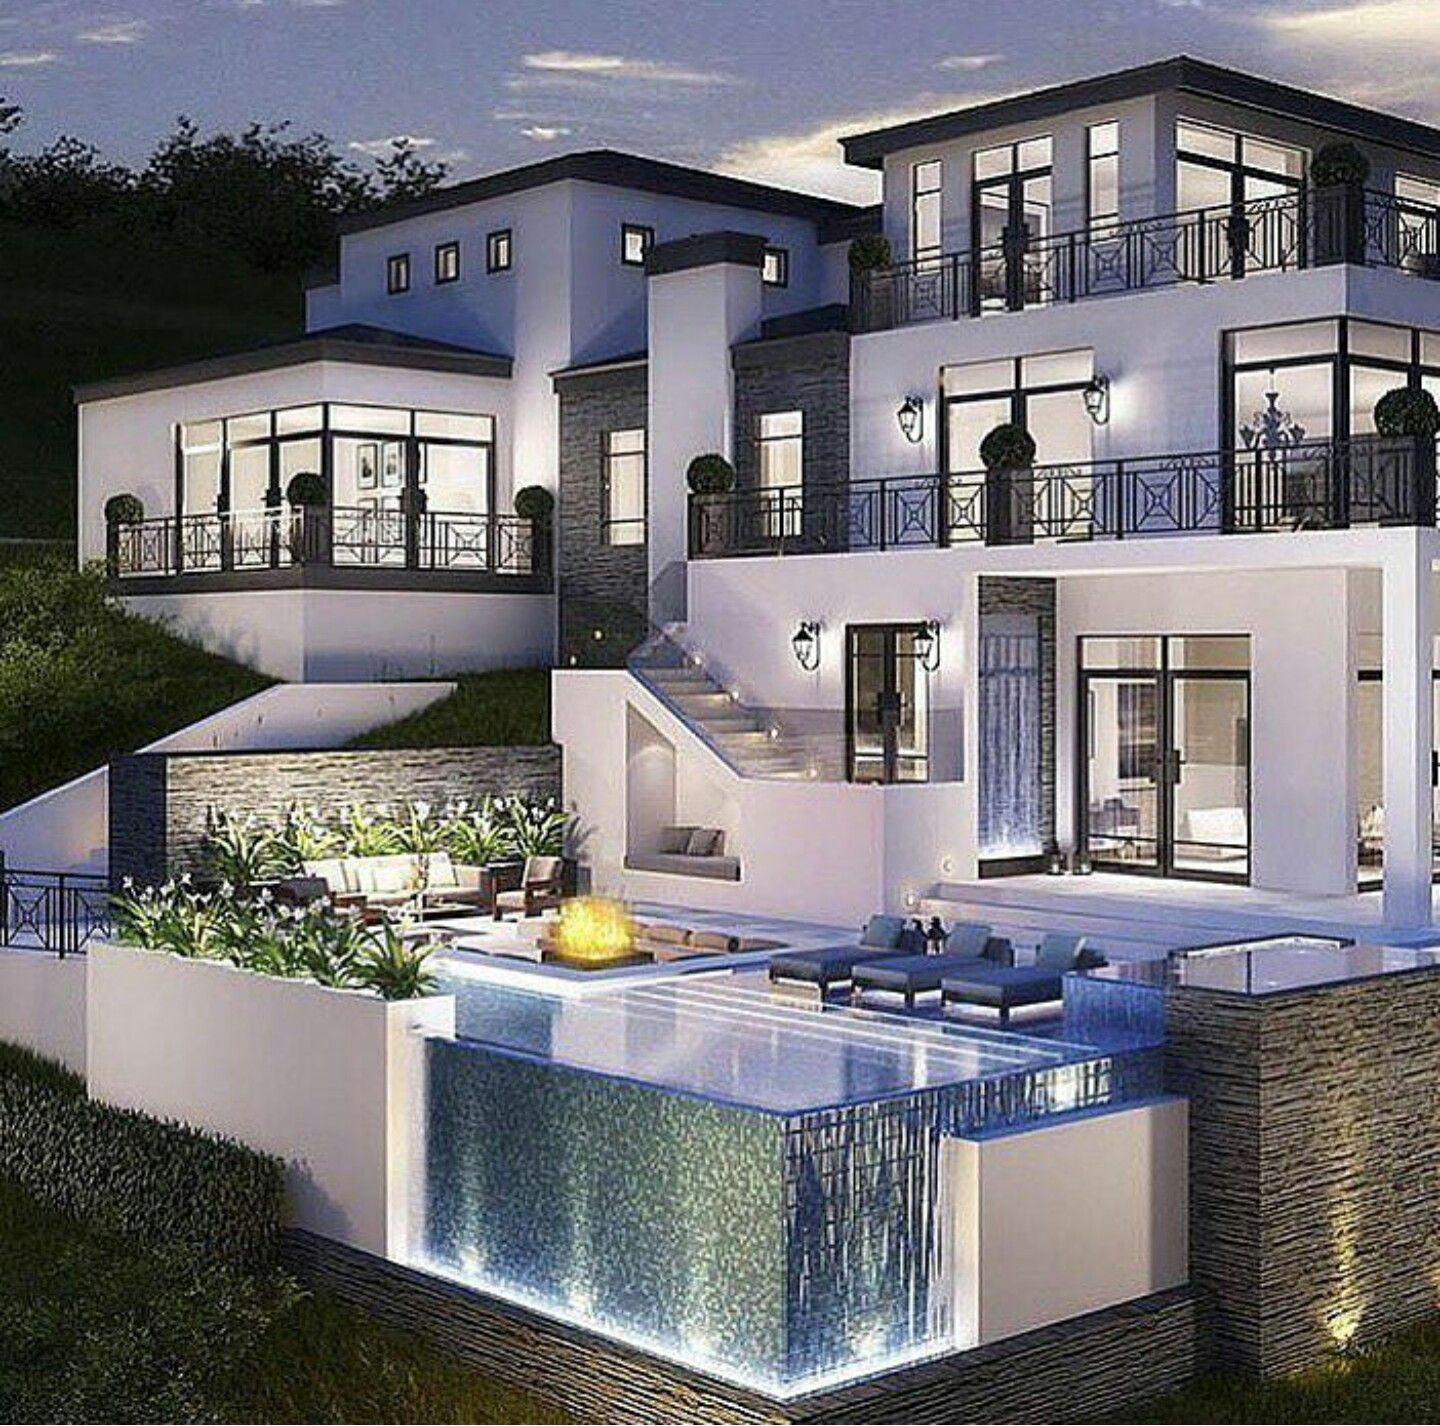 Big Houses In Los Angeles California: Amazing Los Angeles Hollywood Hills Mansion With Infinity